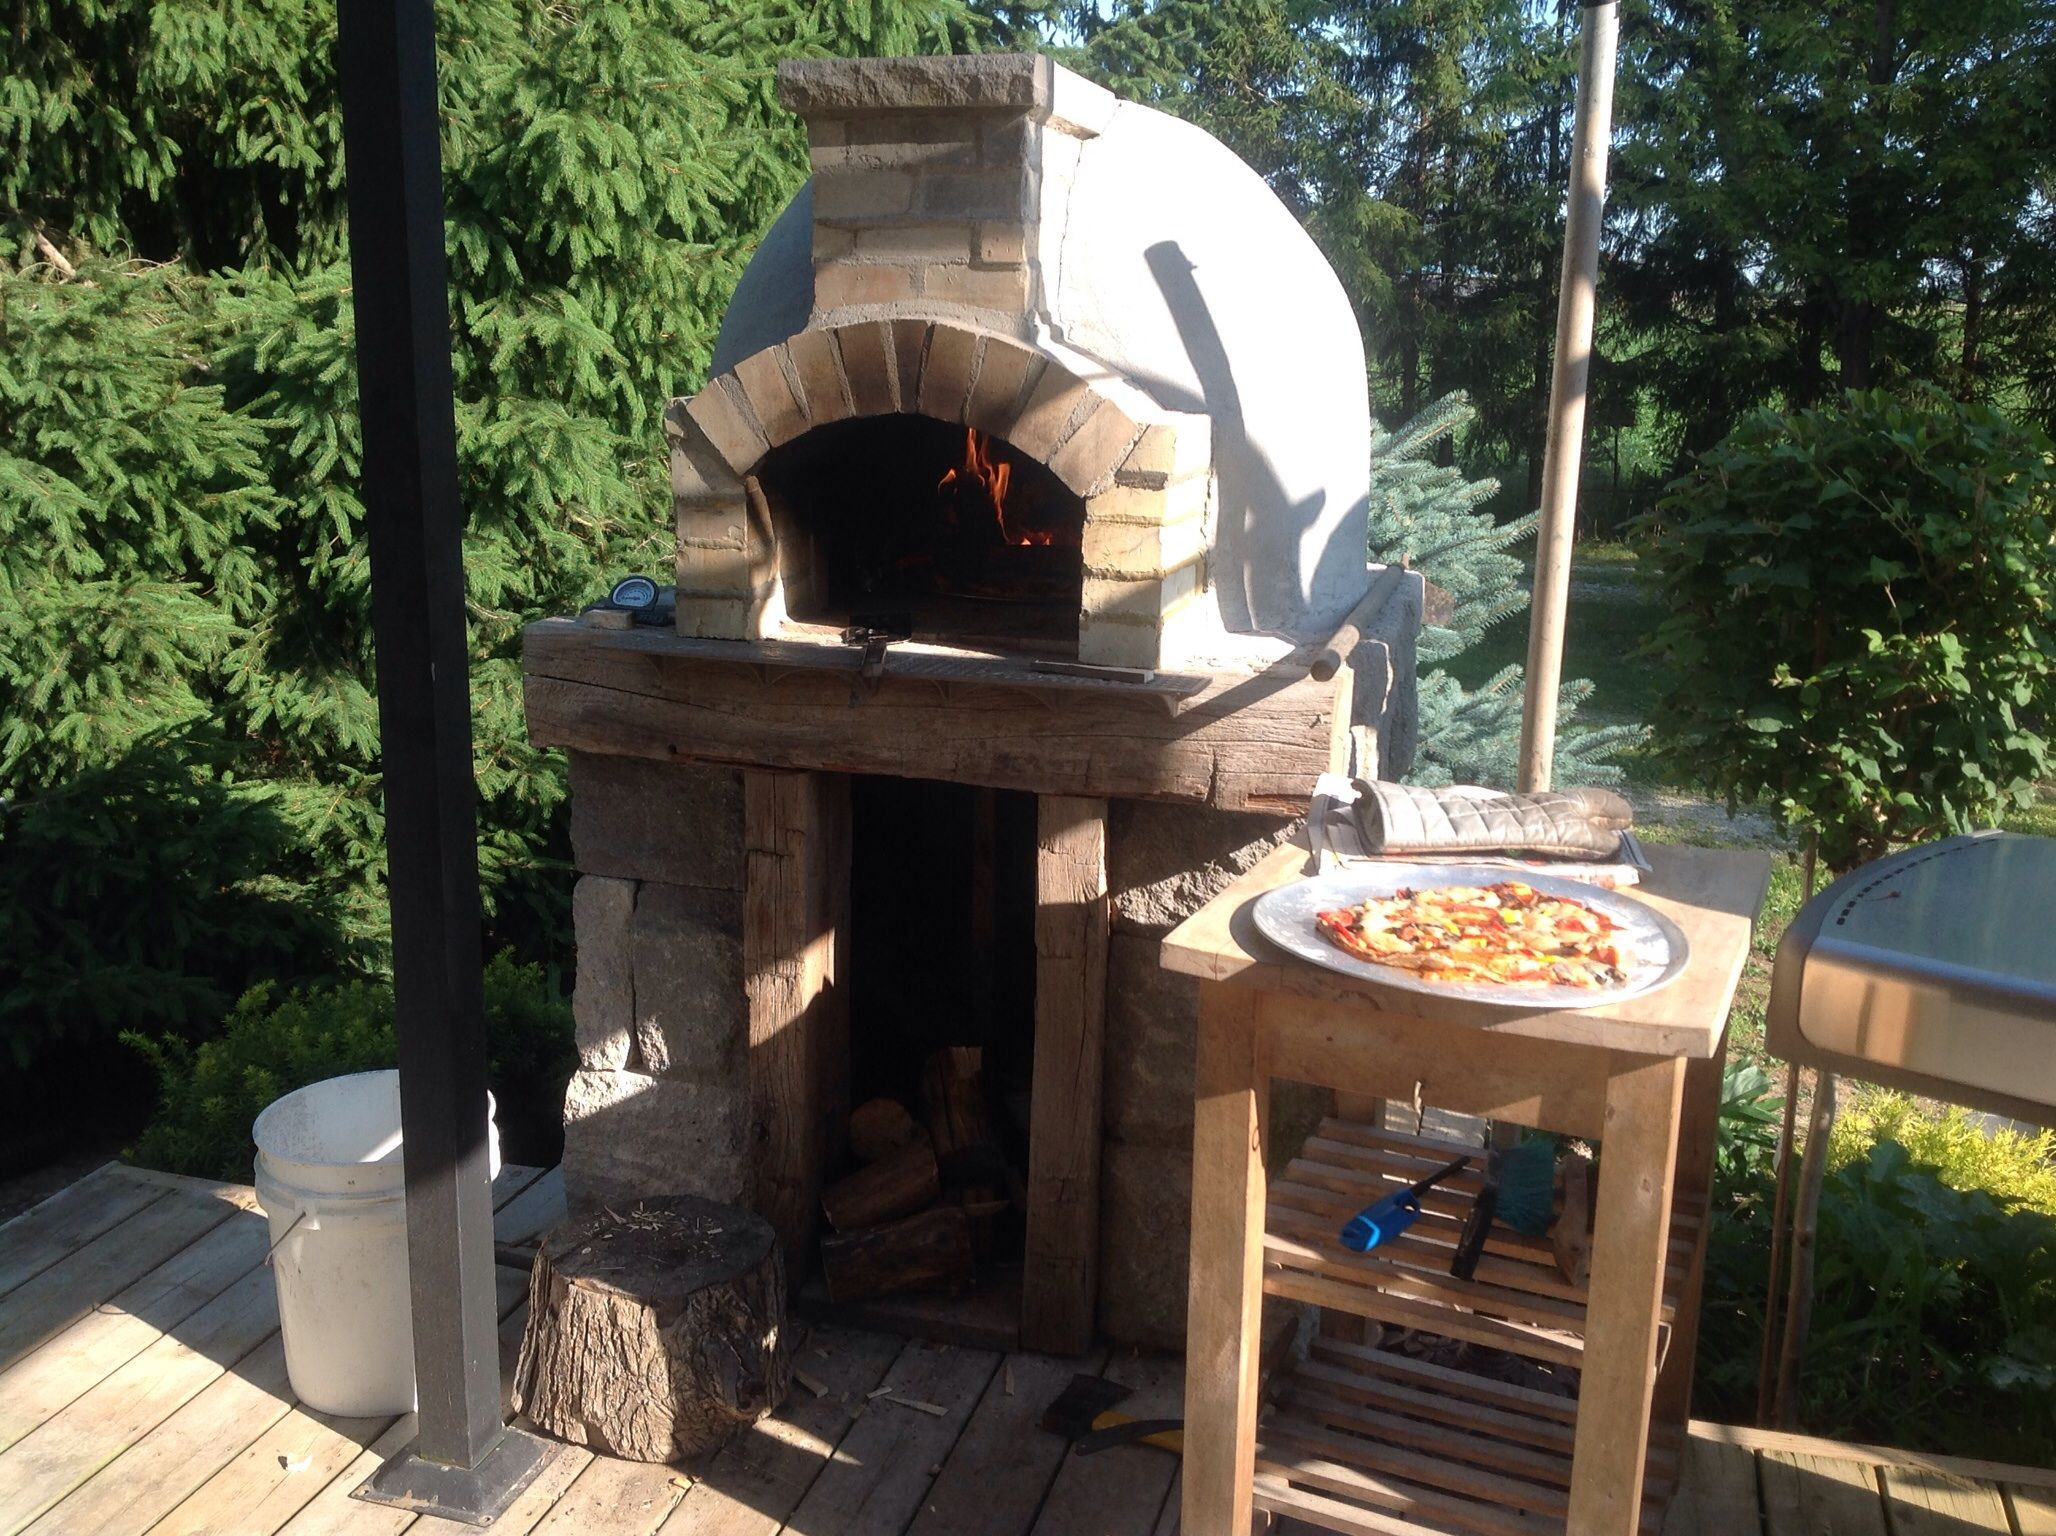 Out door wood fired pizza oven built off the deck for the home